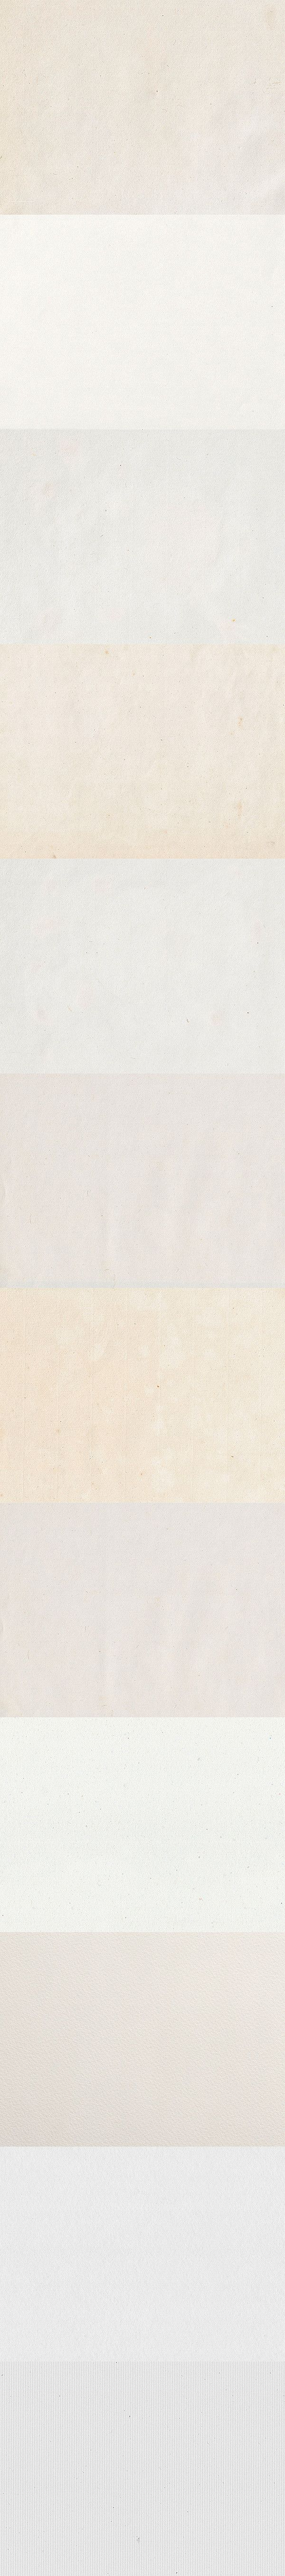 12 #Paper #Textures | GraphicBurger